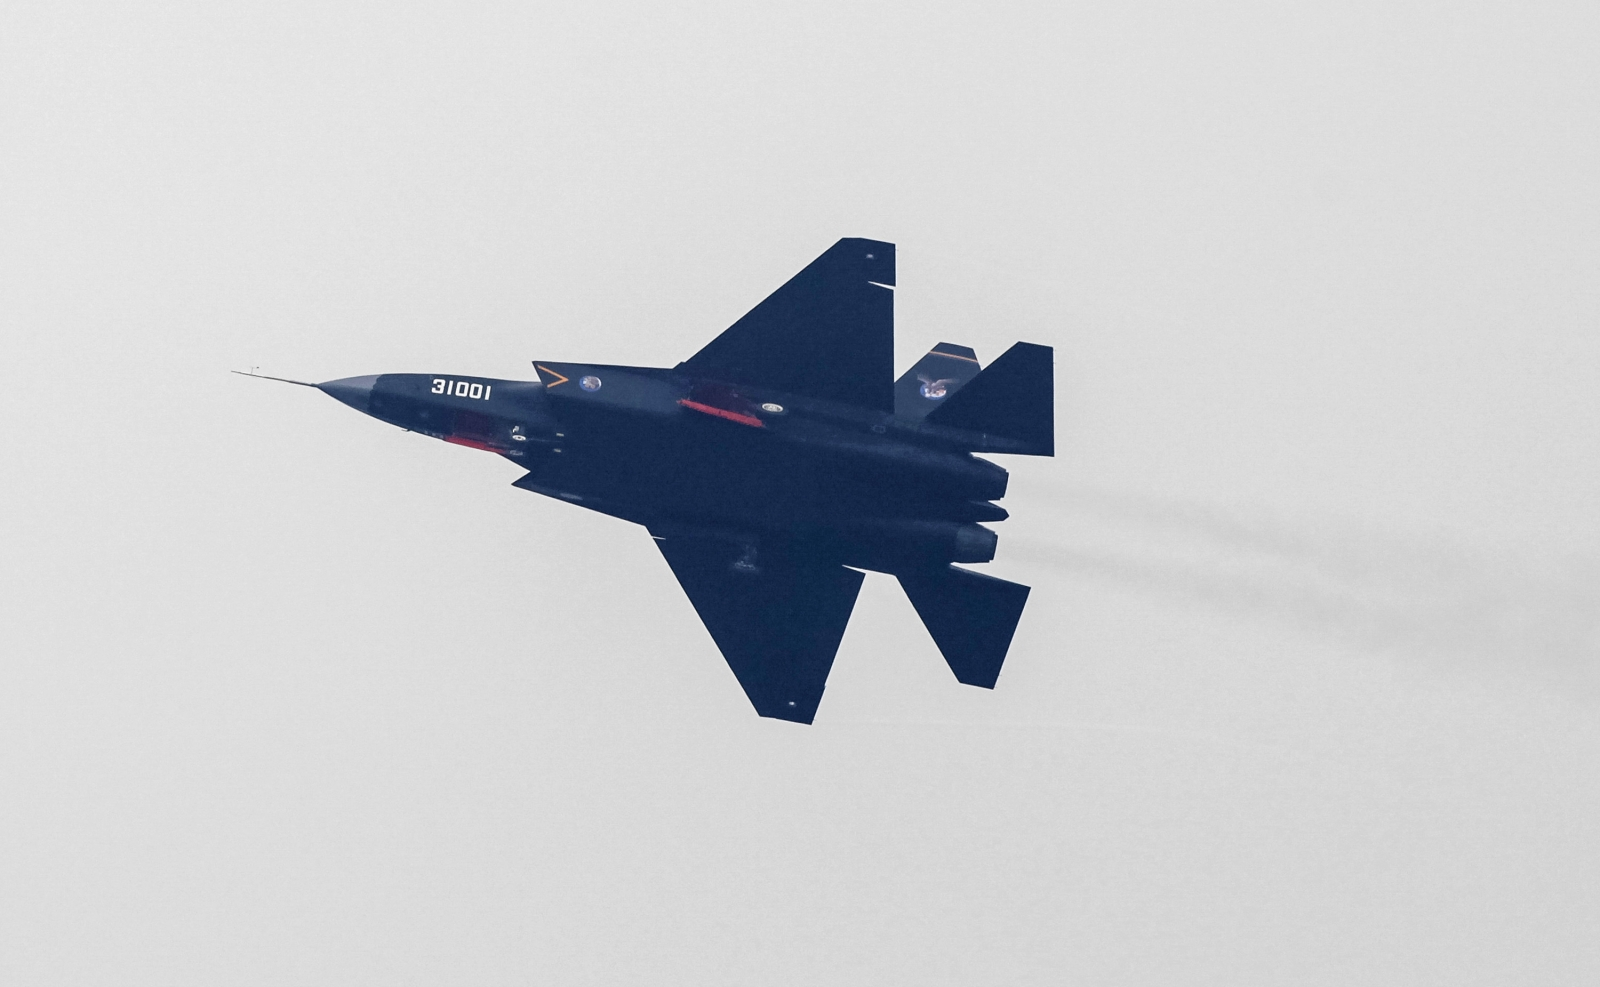 China stealth fighter jet